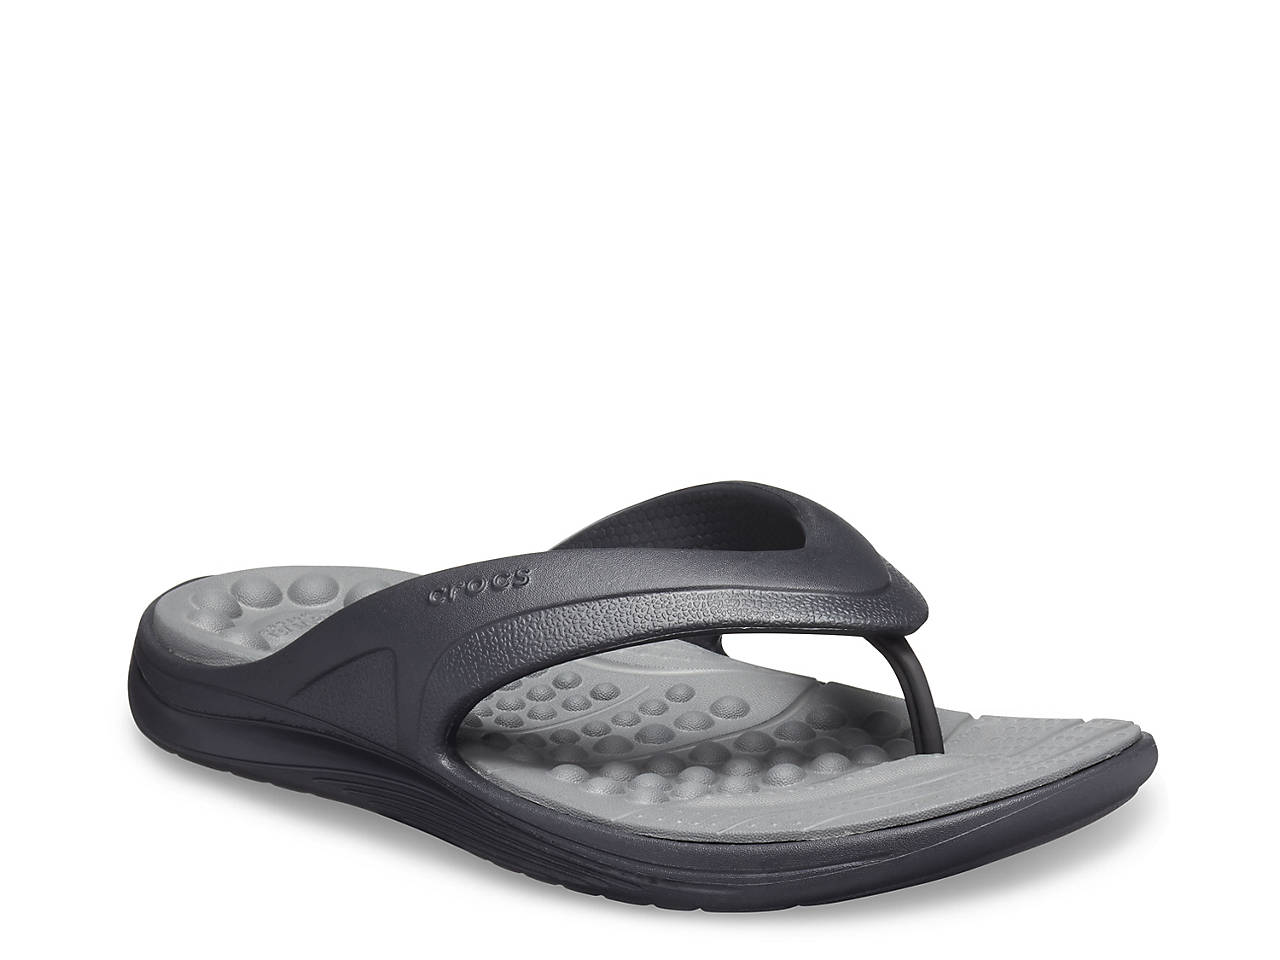 3461d9597fbb Crocs Reviva Flip Flop Men s Shoes